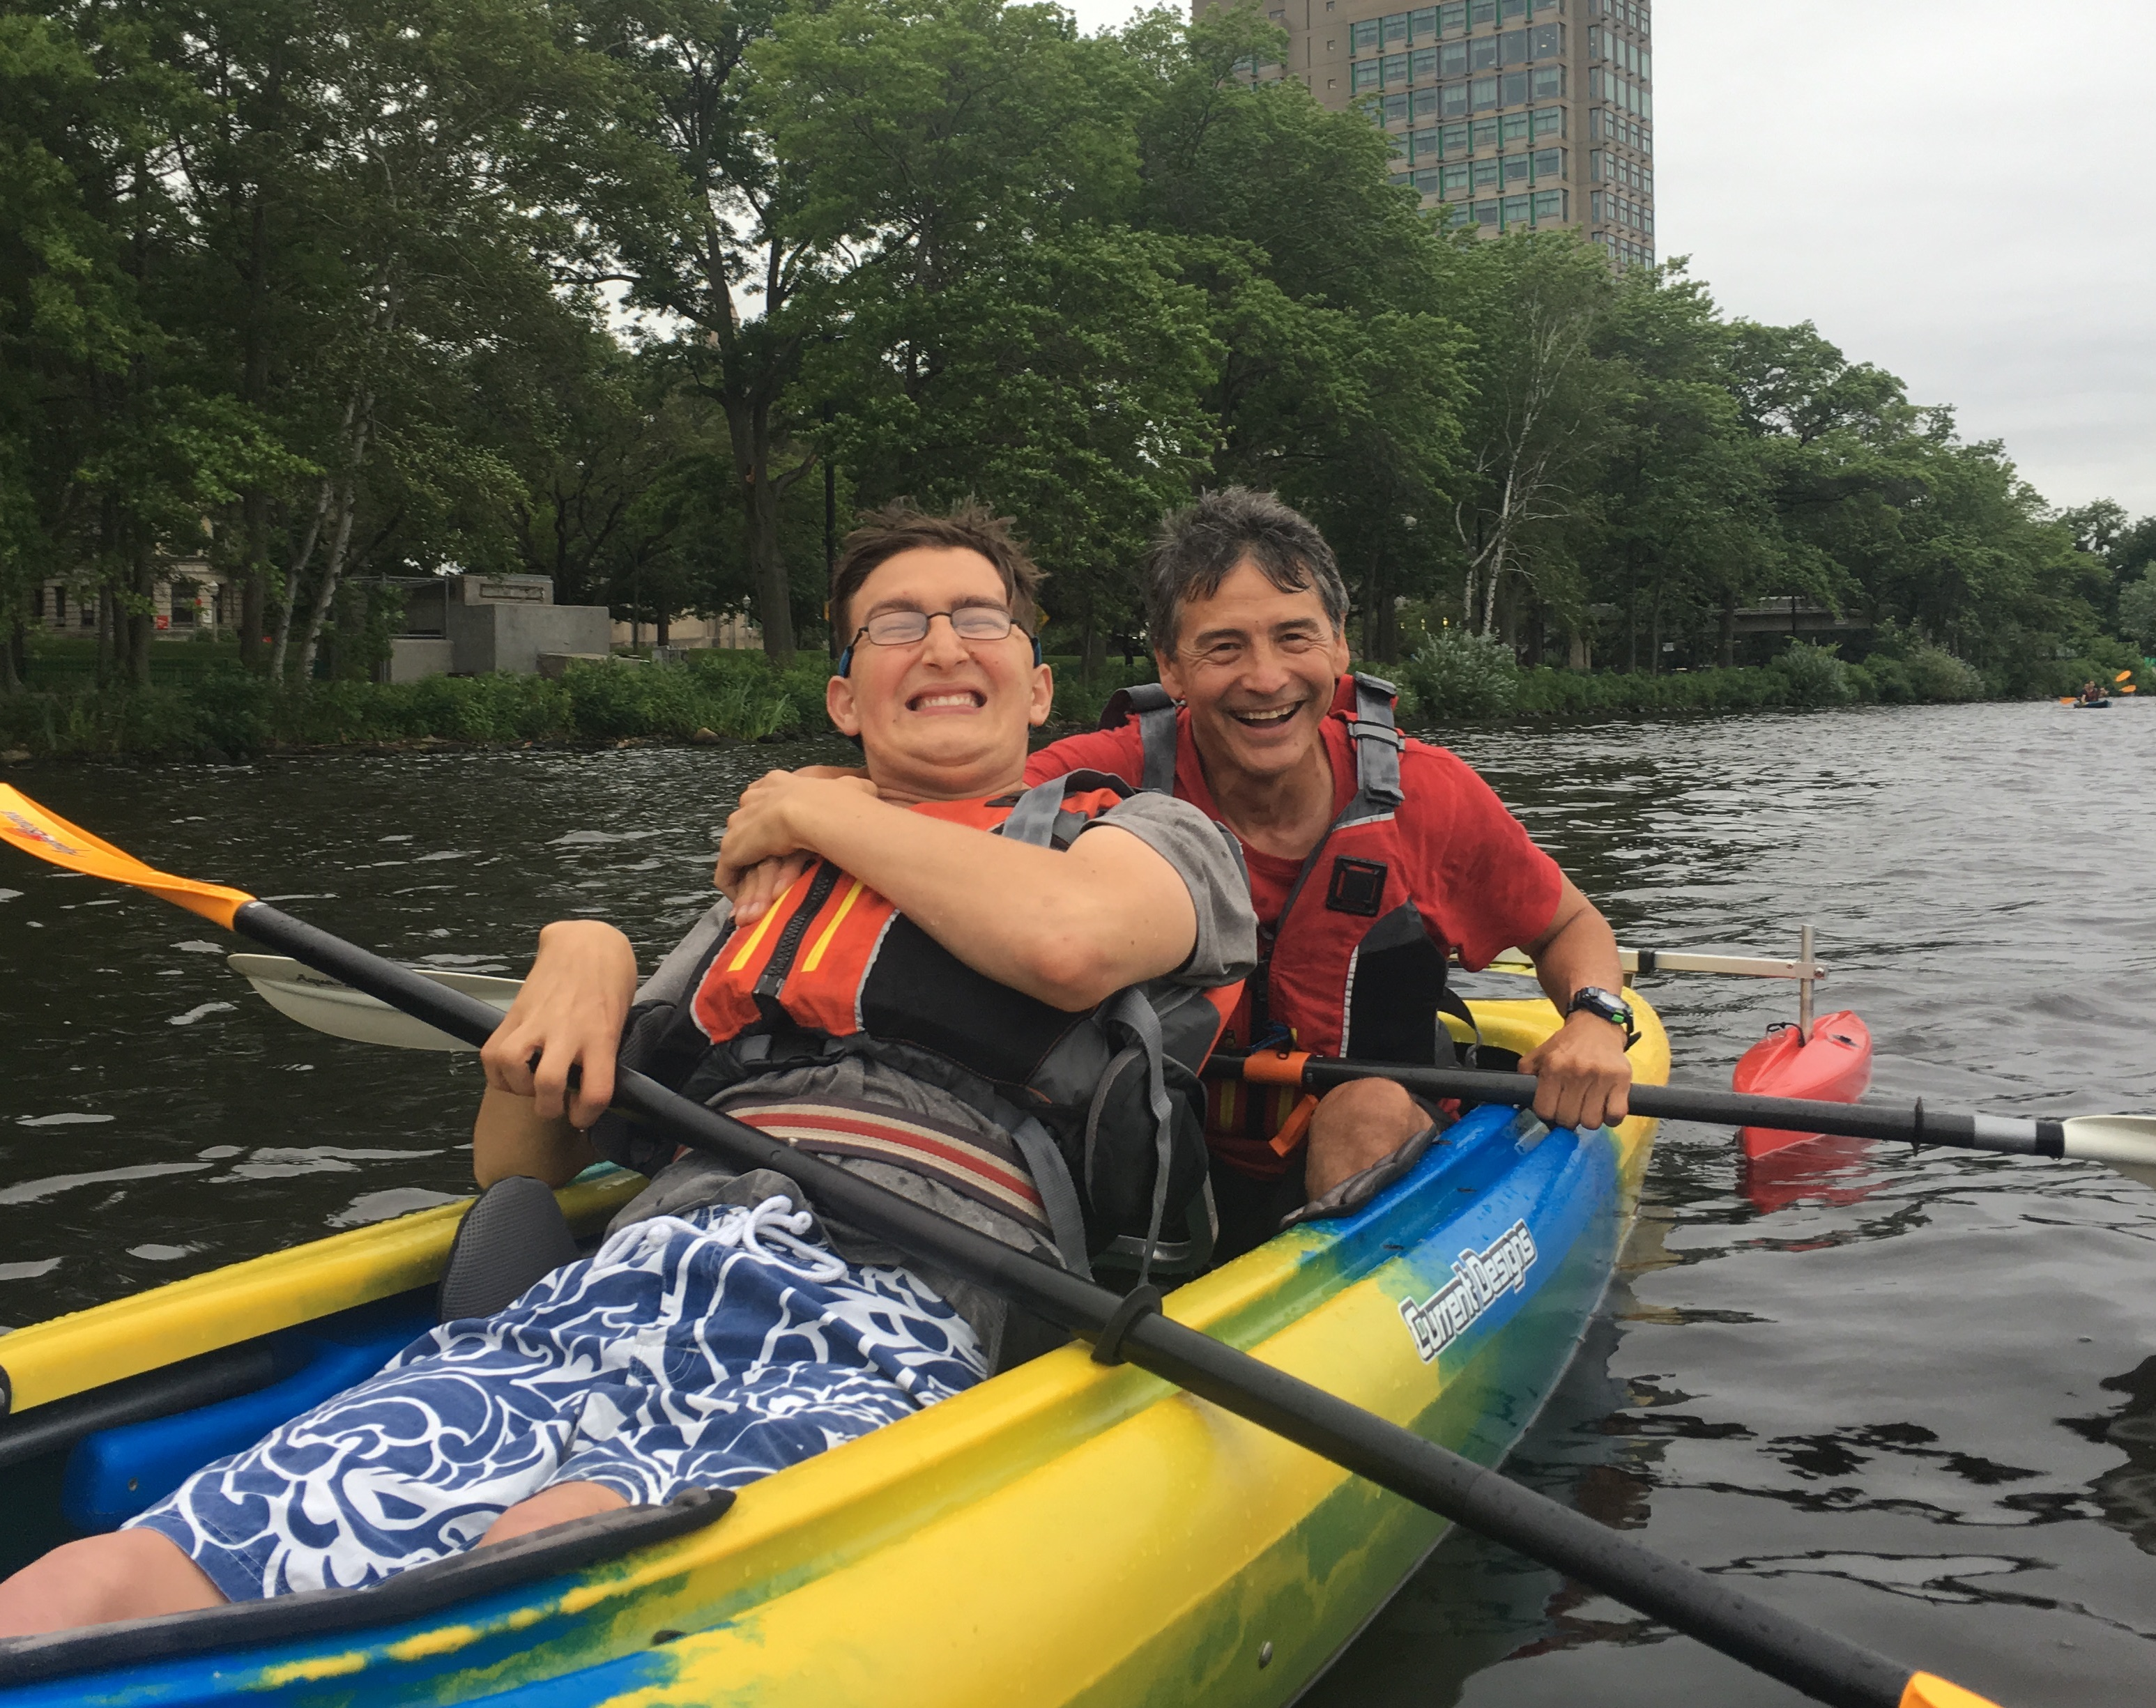 Paddle partners in kayak with large smiles on their faces